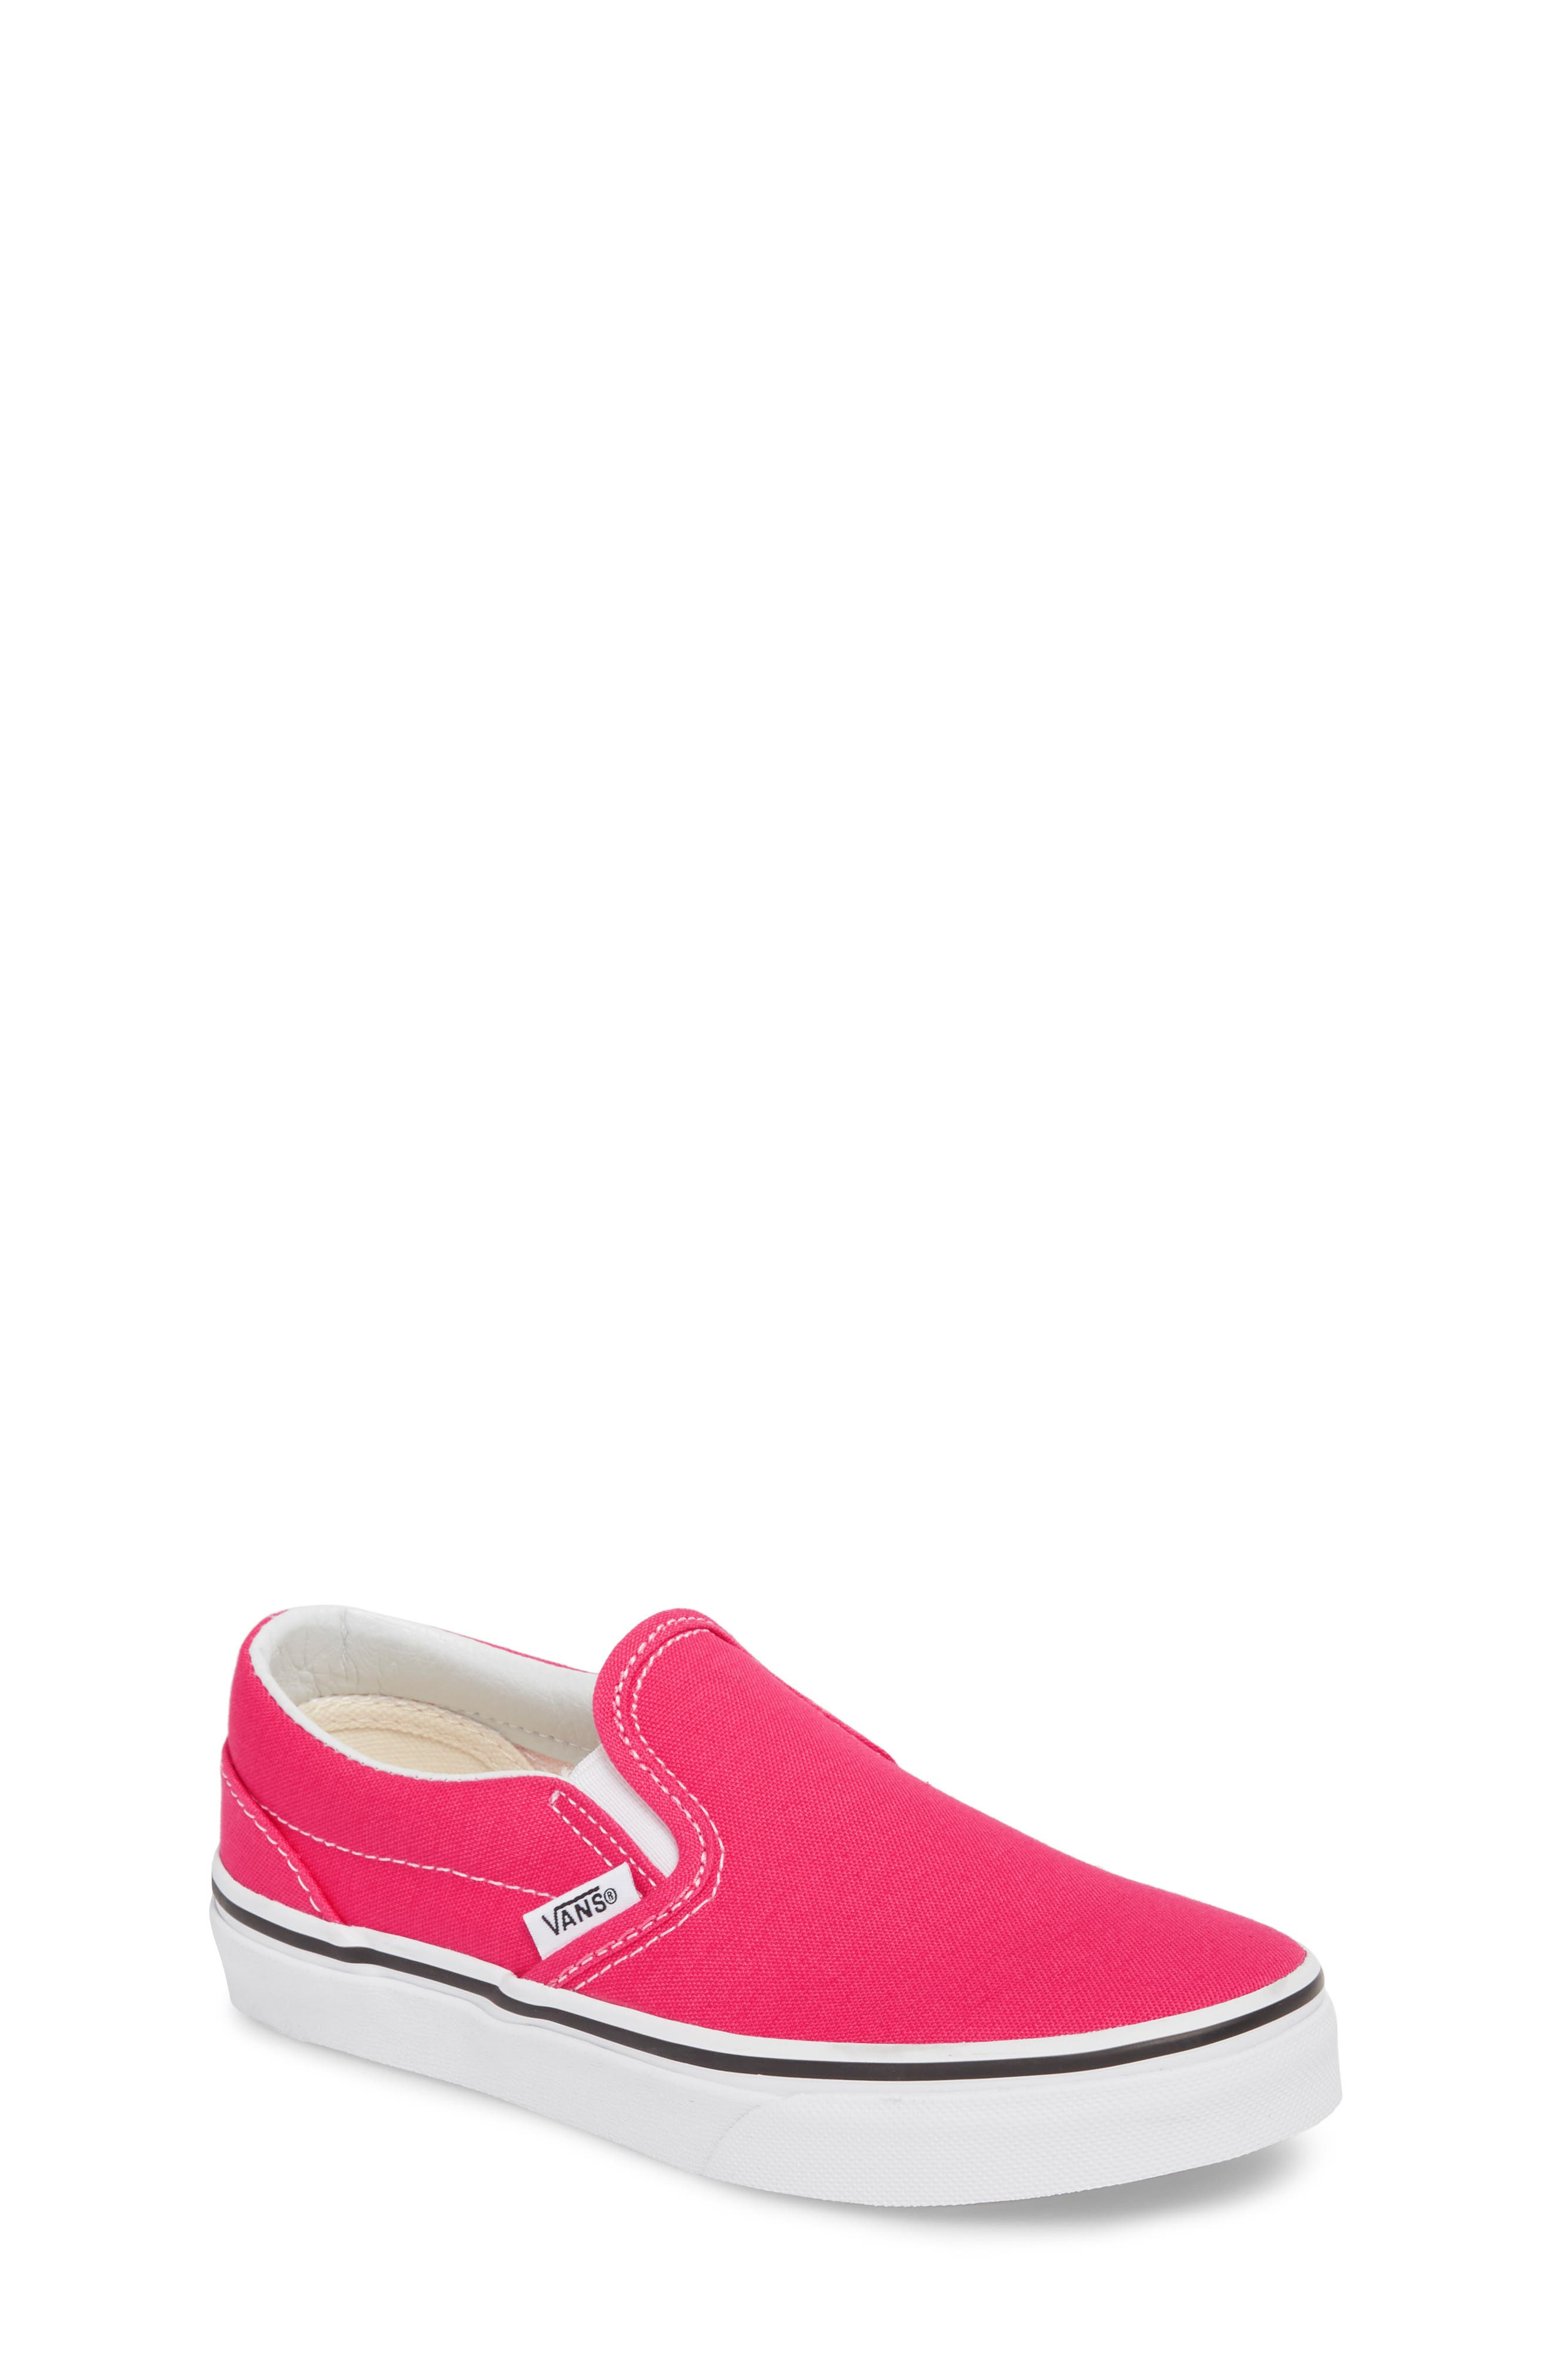 Vans 'Classic' Slip-On (Toddler, Little Kid & Big Kid)